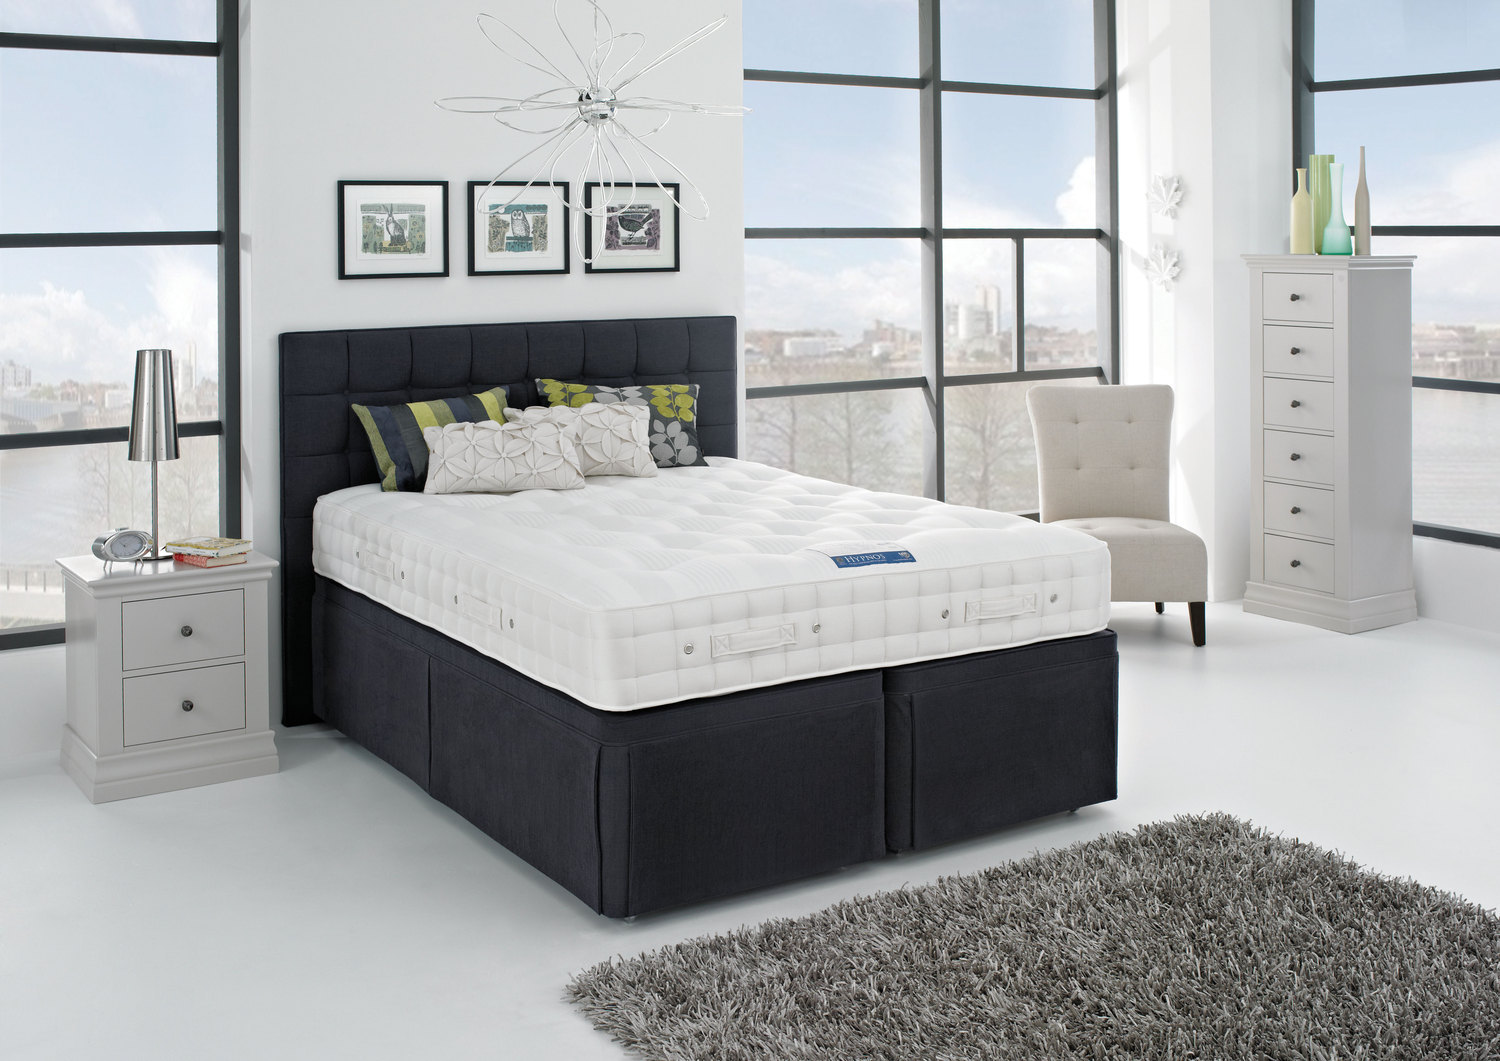 Hypnos Orthocare 10 Mattress Firm From